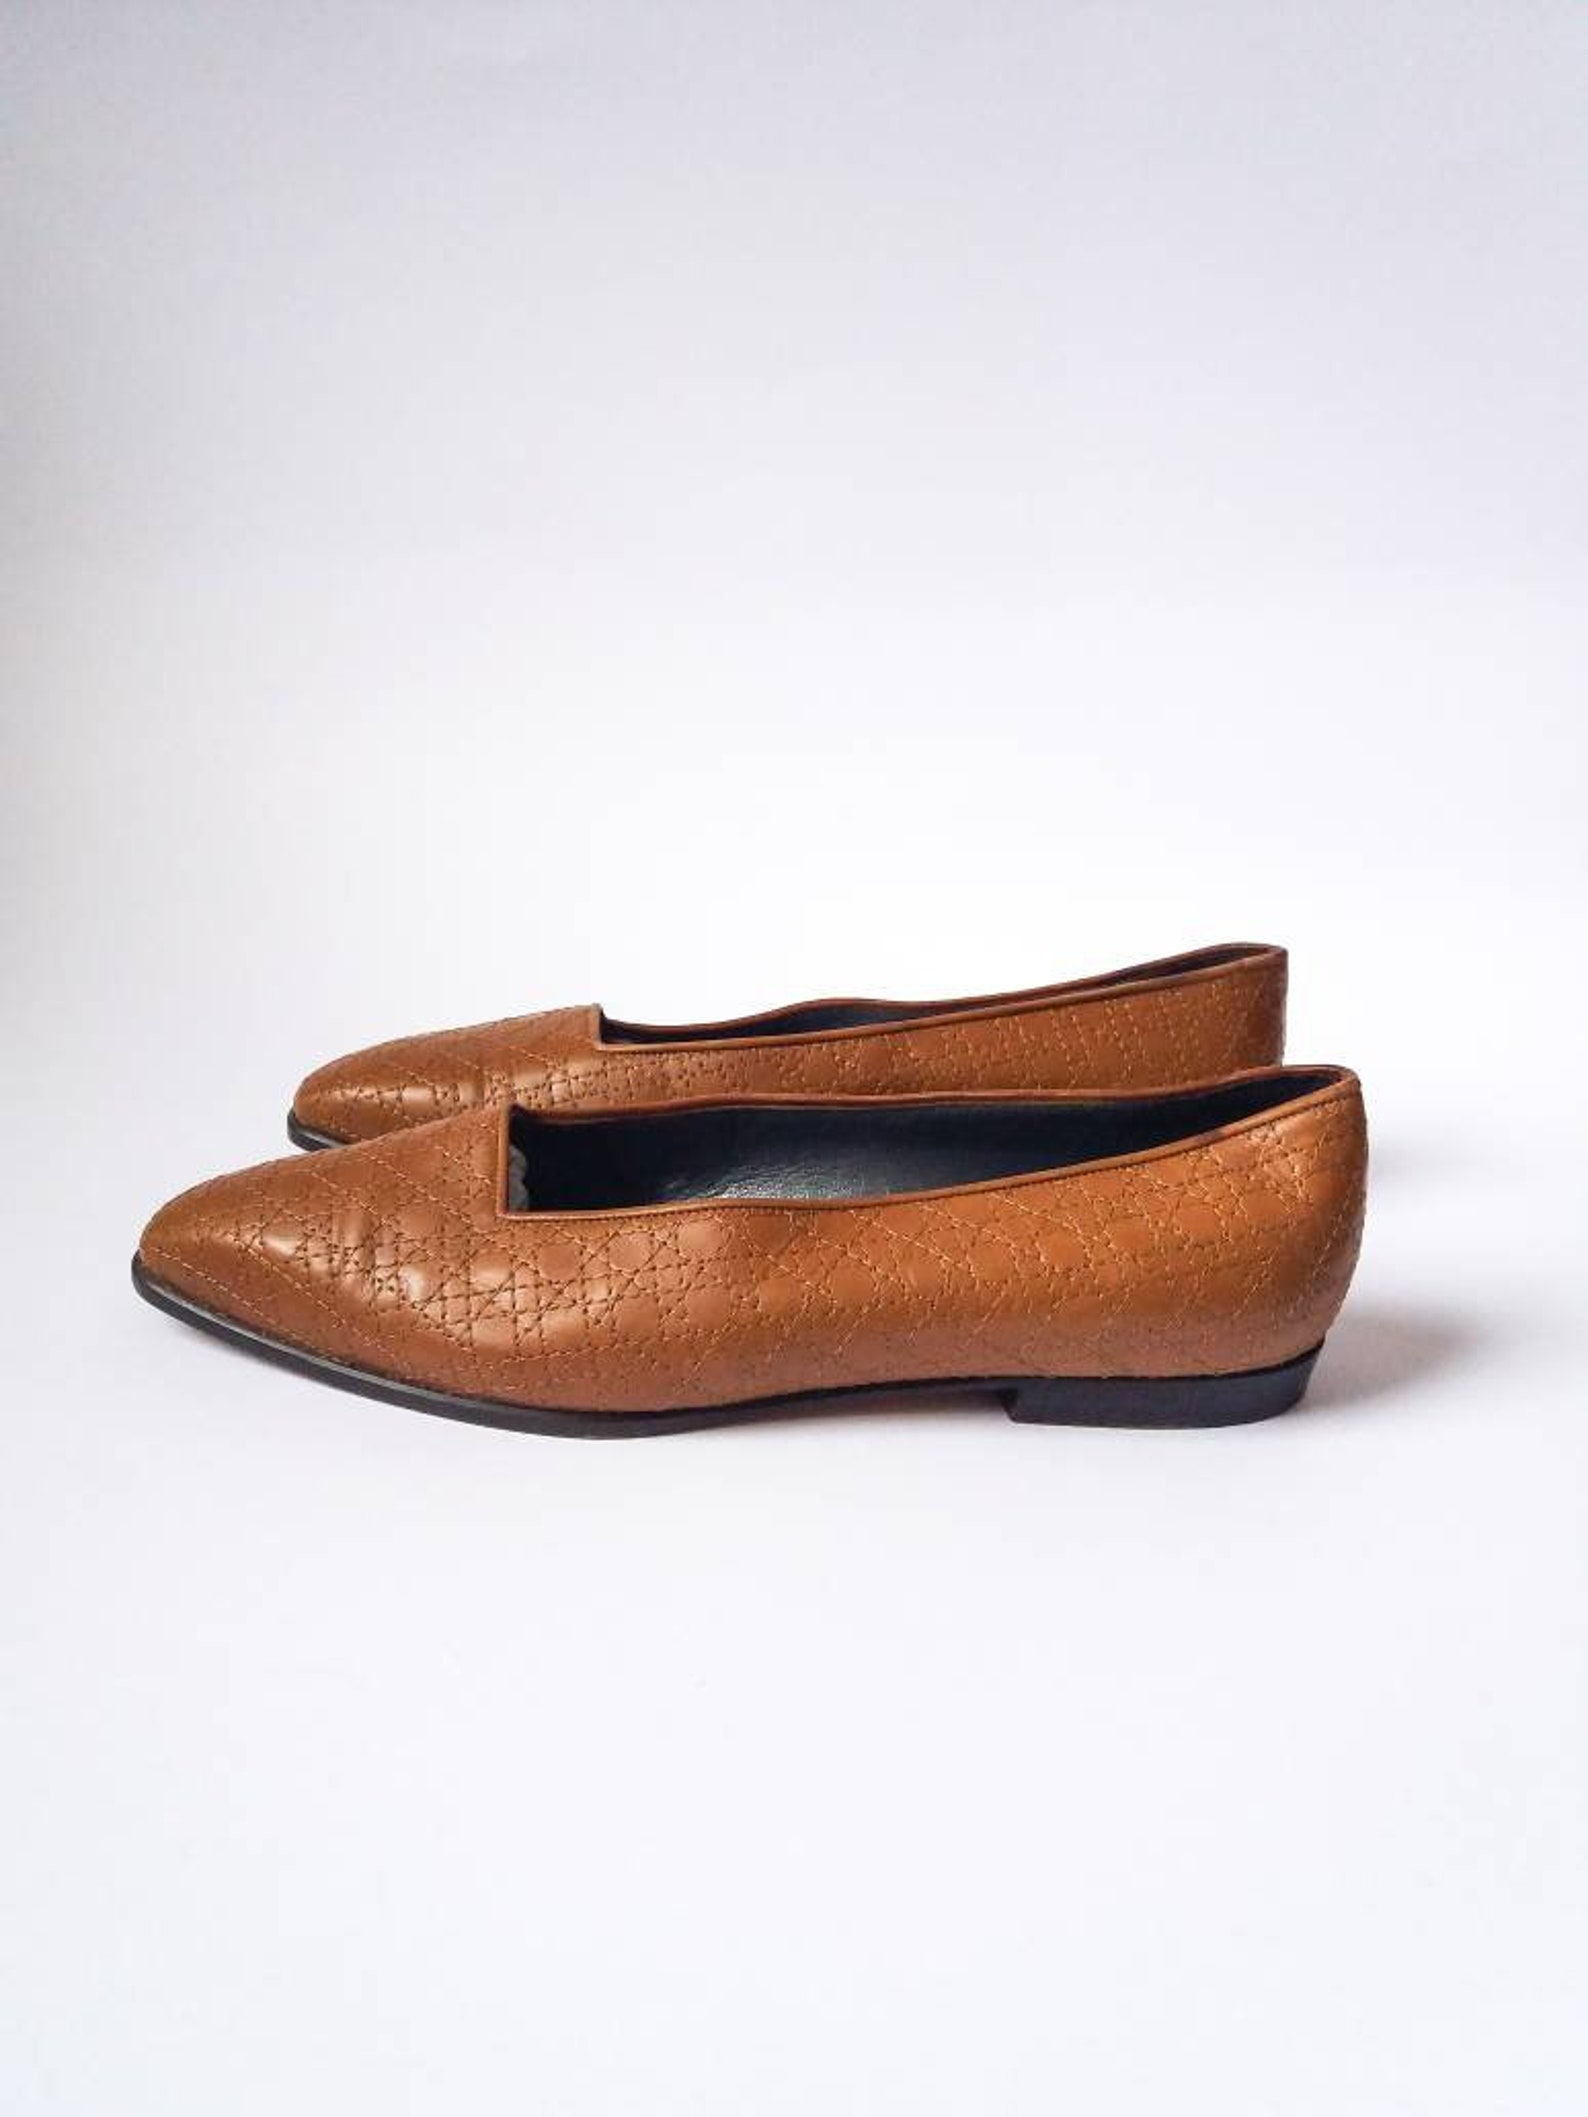 christian dior vintage brown leather flats shoes ballet slip ons